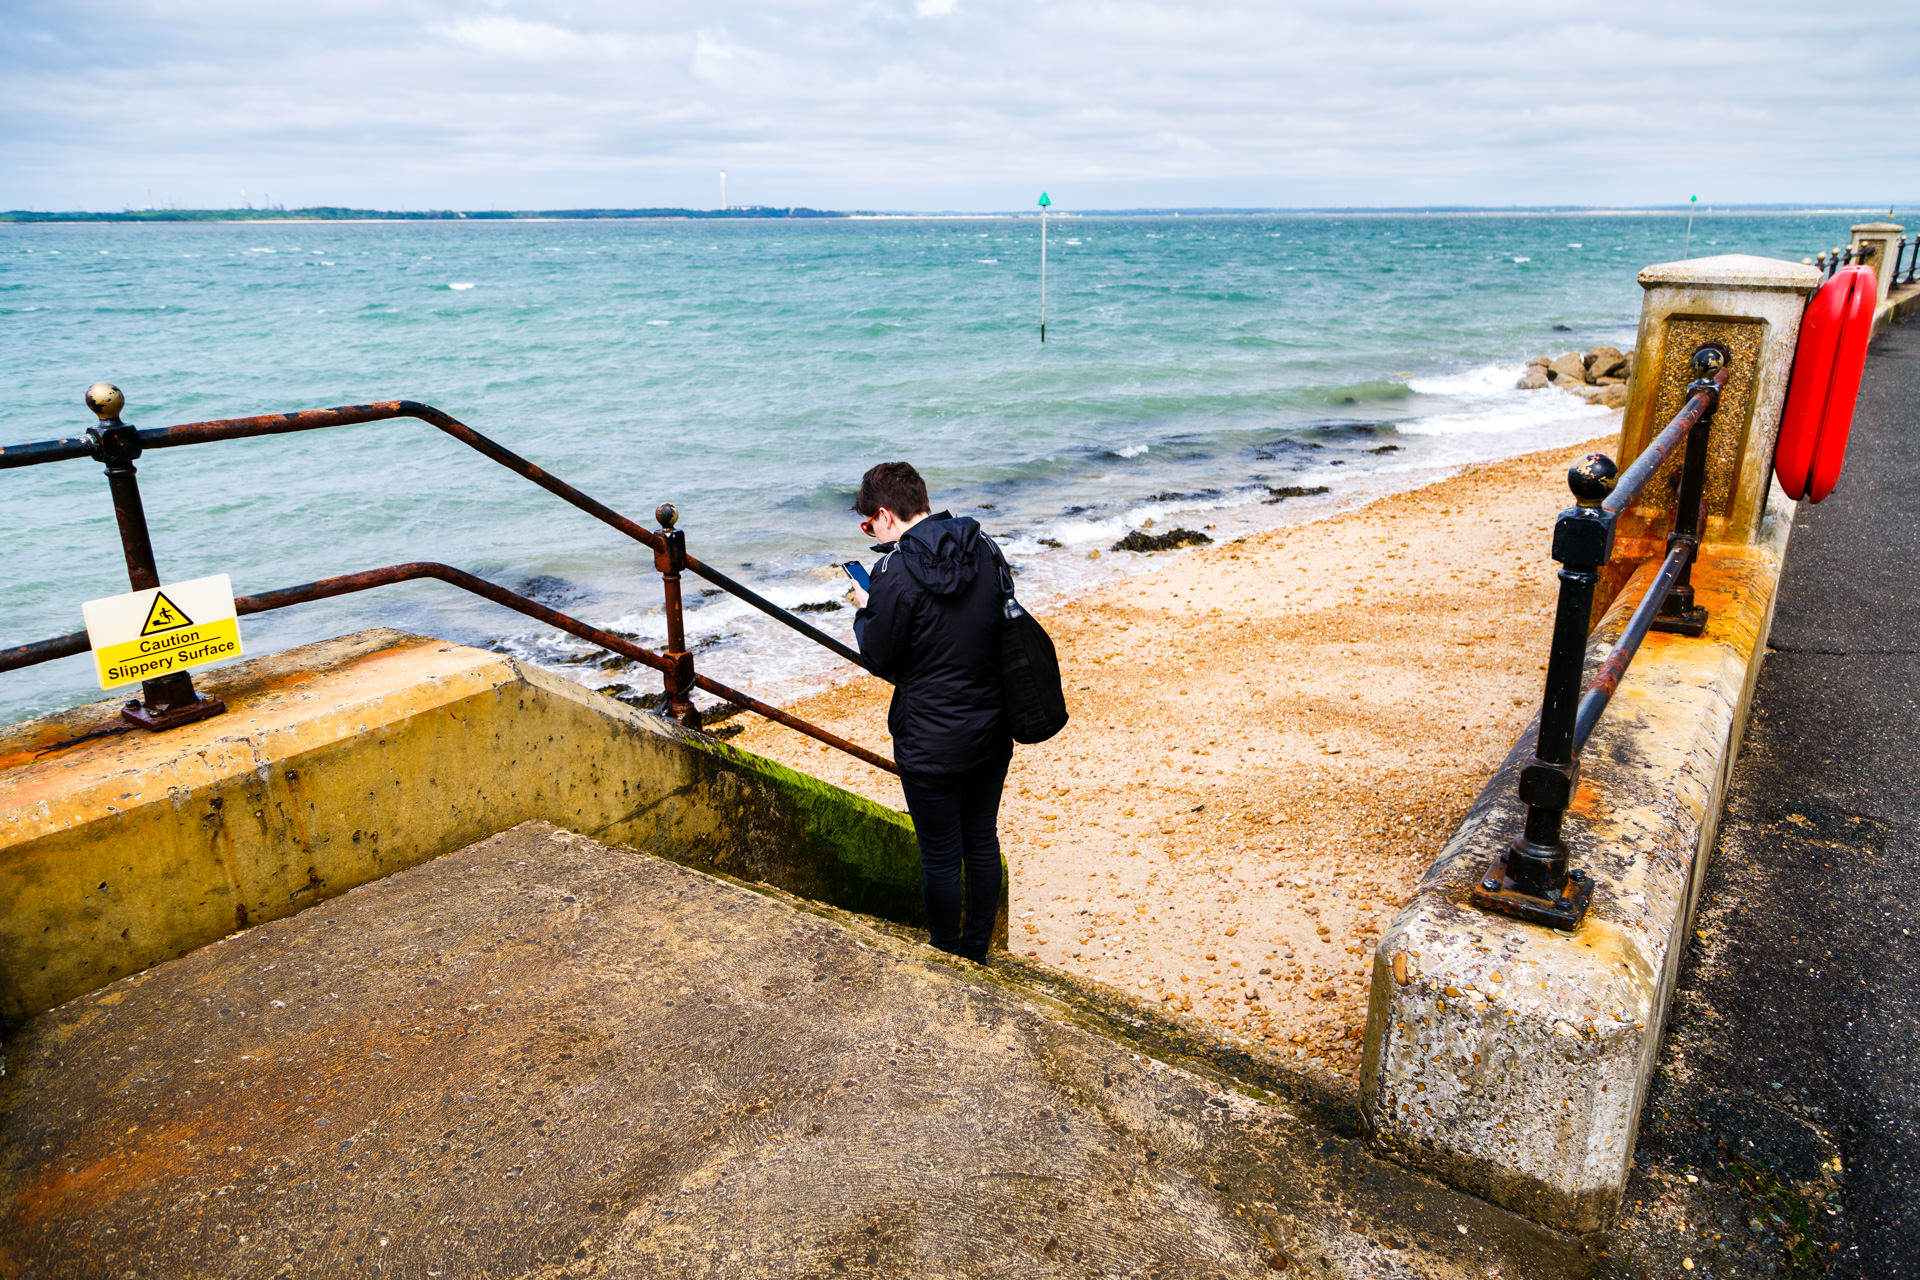 Han taking a snap of the rusted railings.